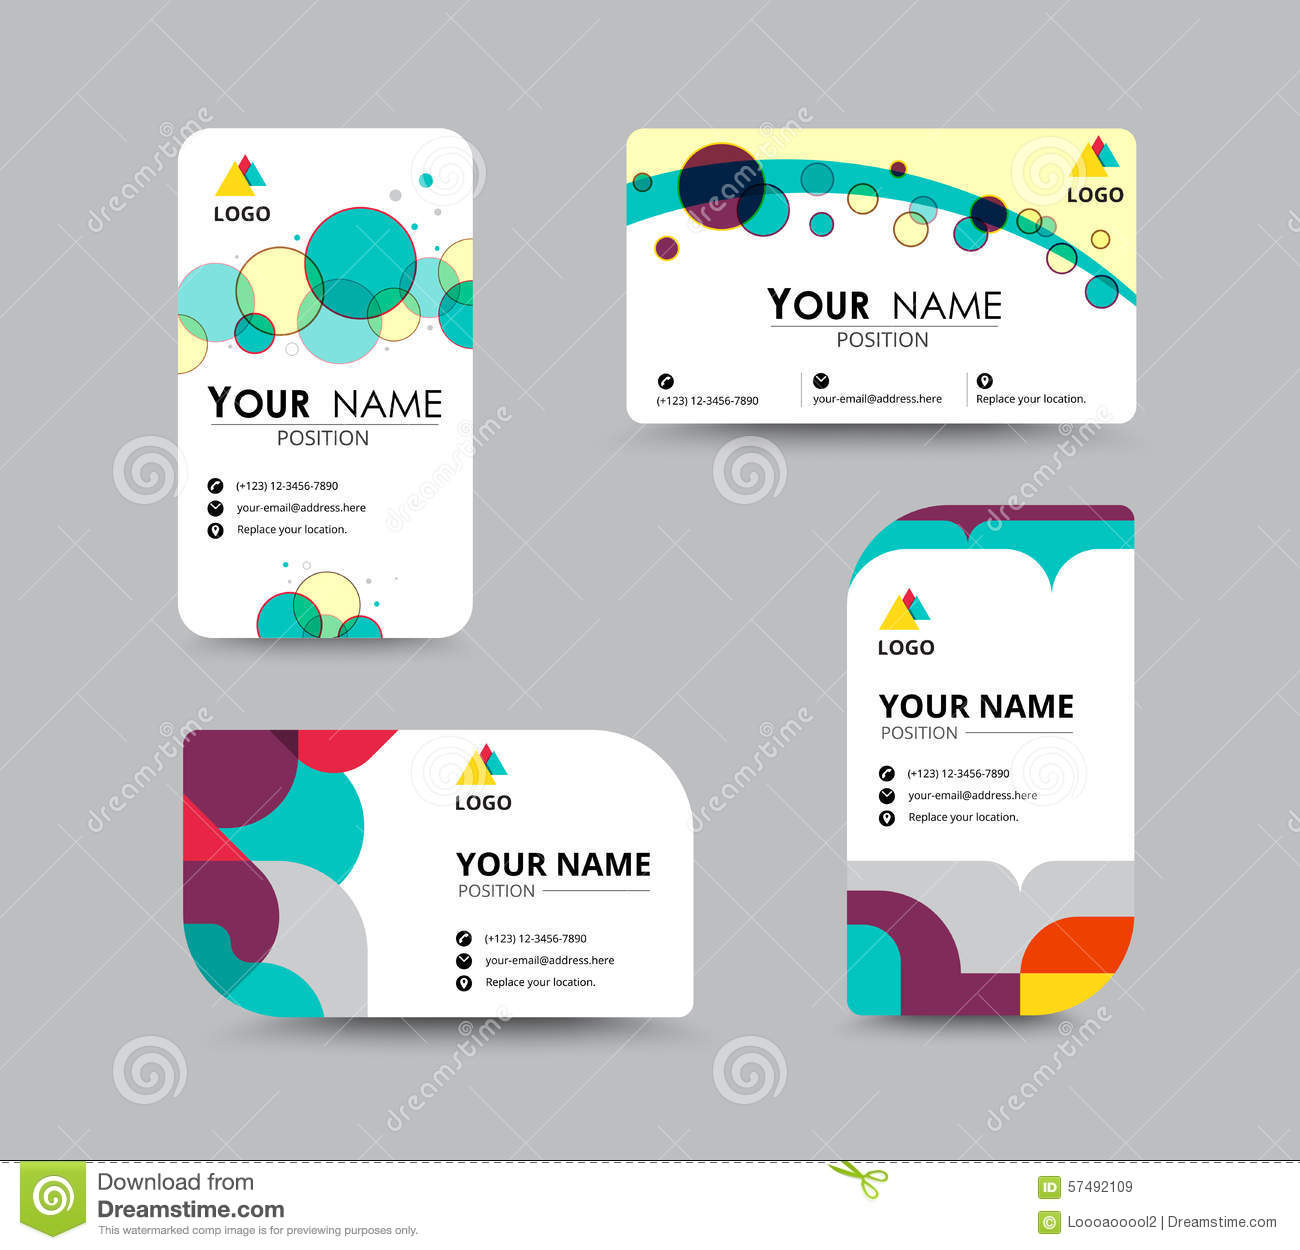 business contact card template design vector stock stock vector image 57492109. Black Bedroom Furniture Sets. Home Design Ideas